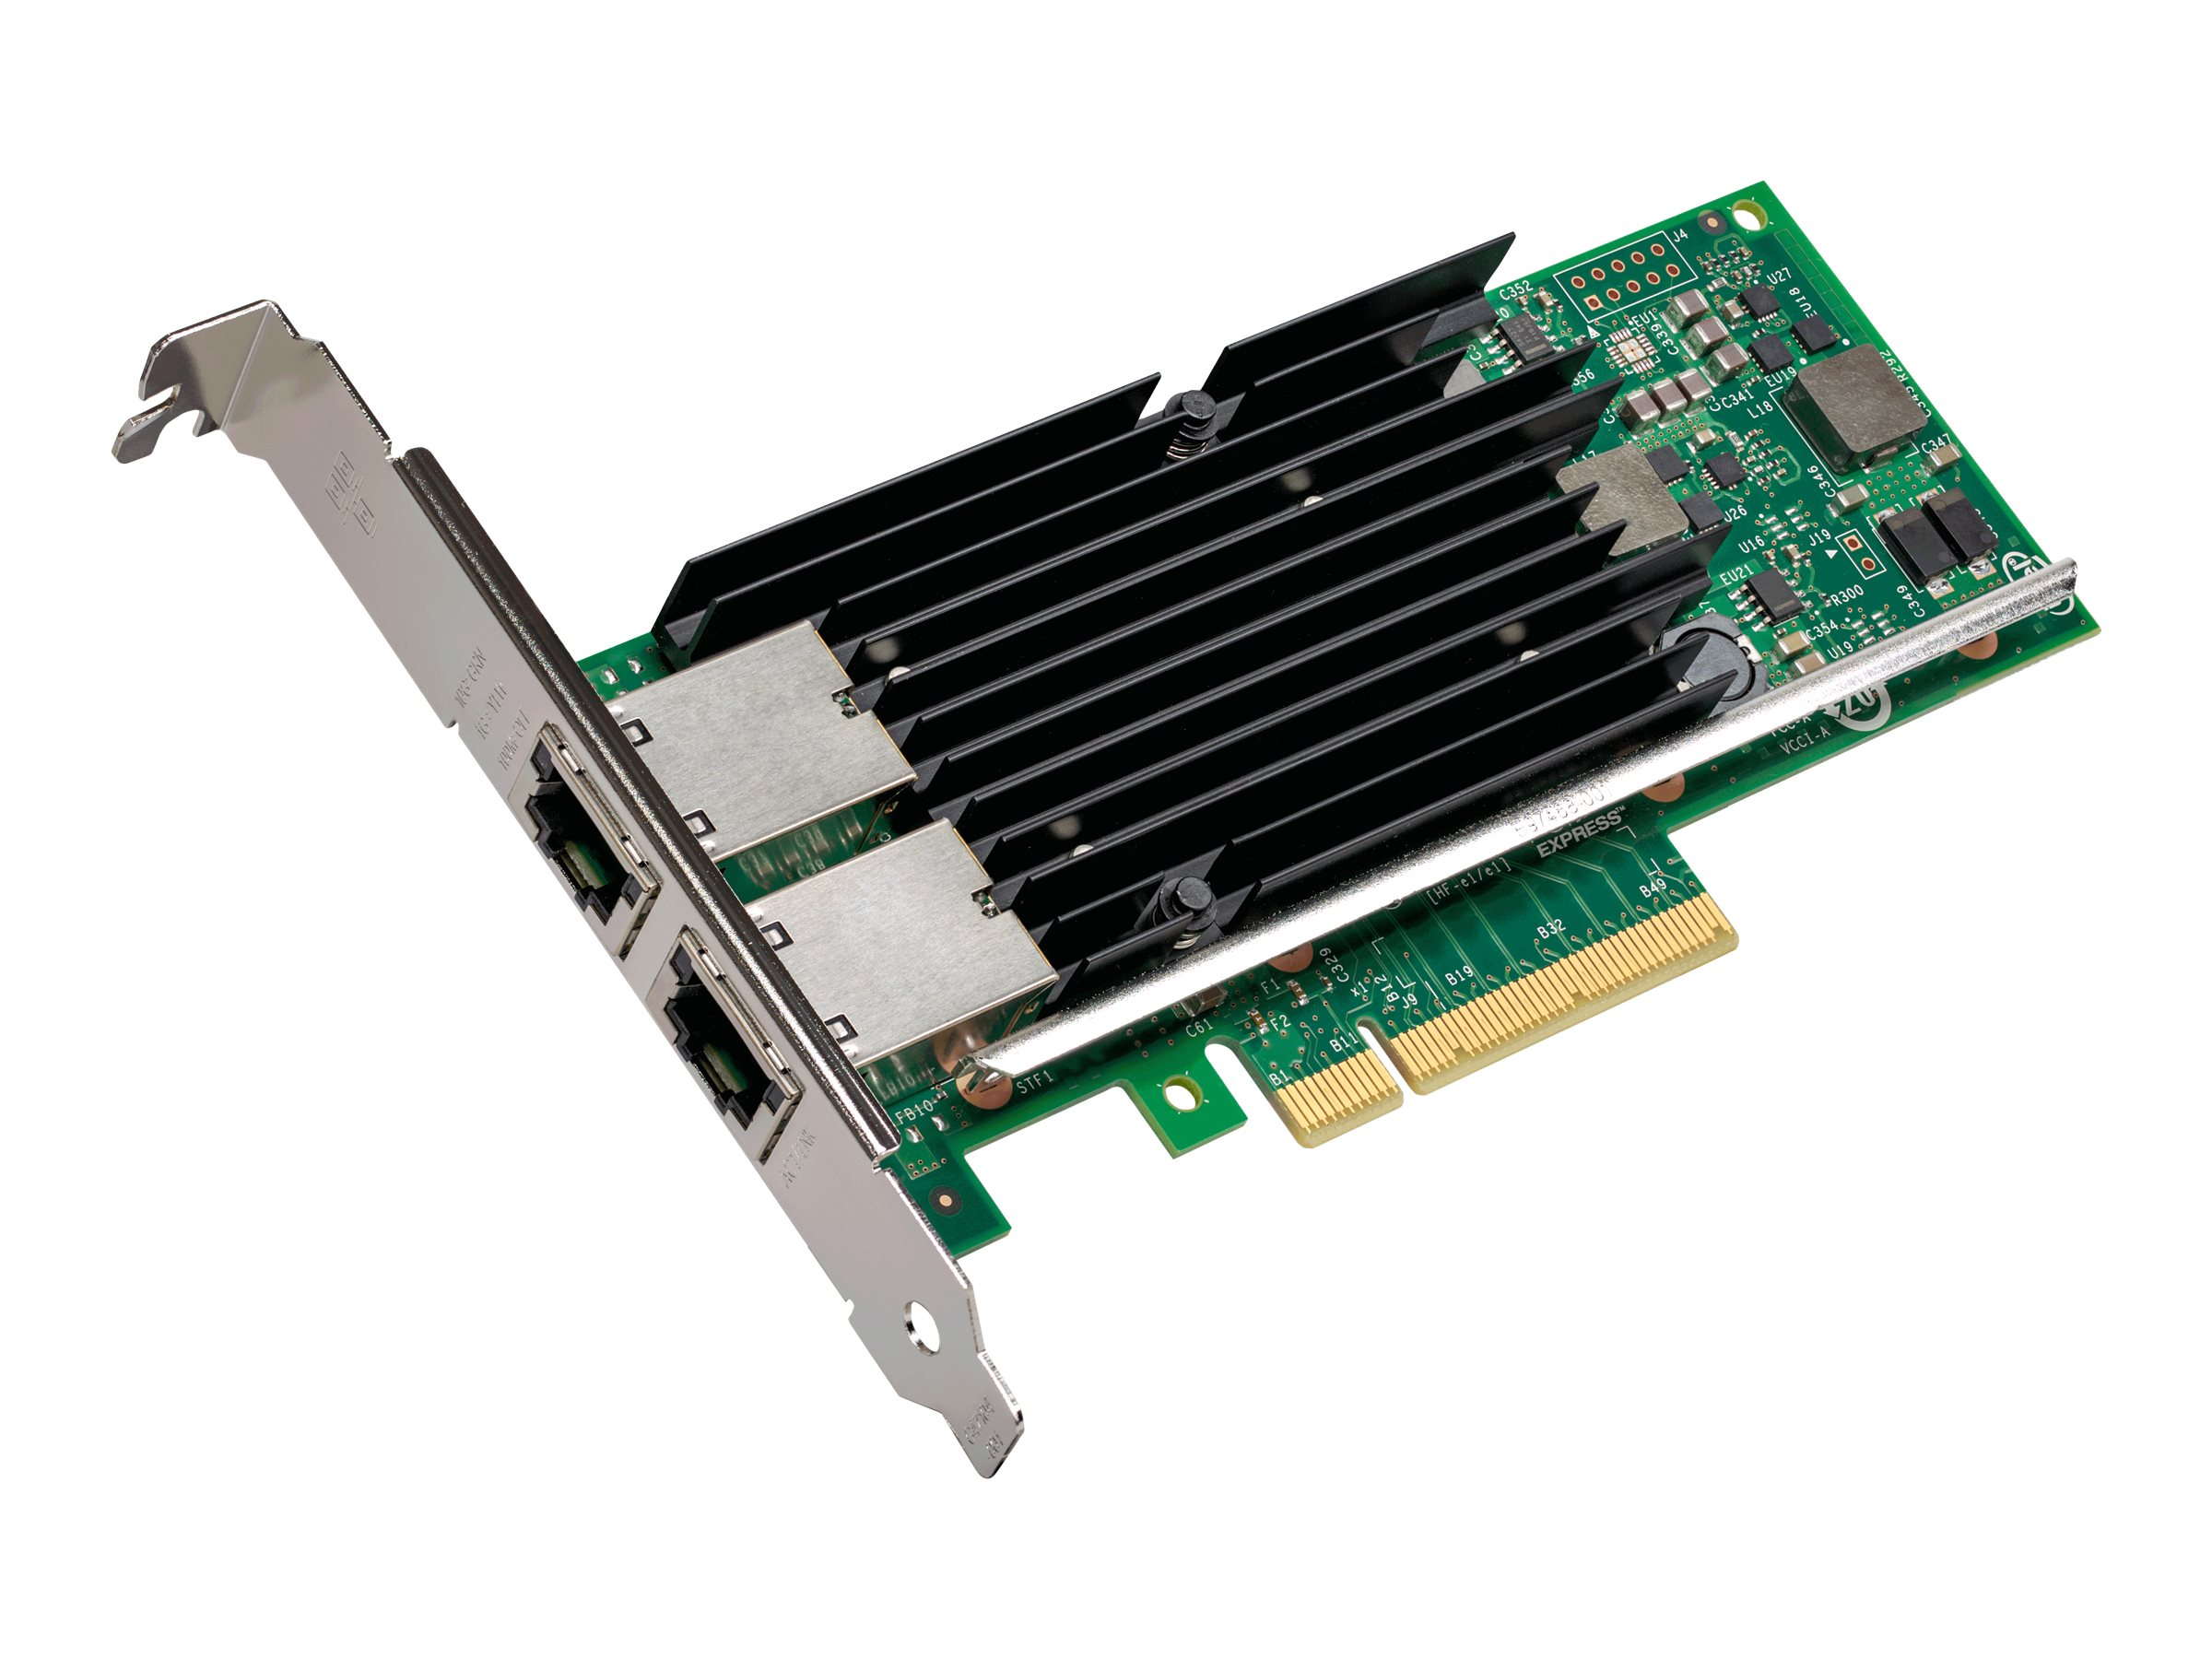 Intel Ethernet Converged Network Adapter X540-T2 - Netzwerkadapter - PCIe 2.0 x8 Low-Profile - 10Gb Ethernet x 2